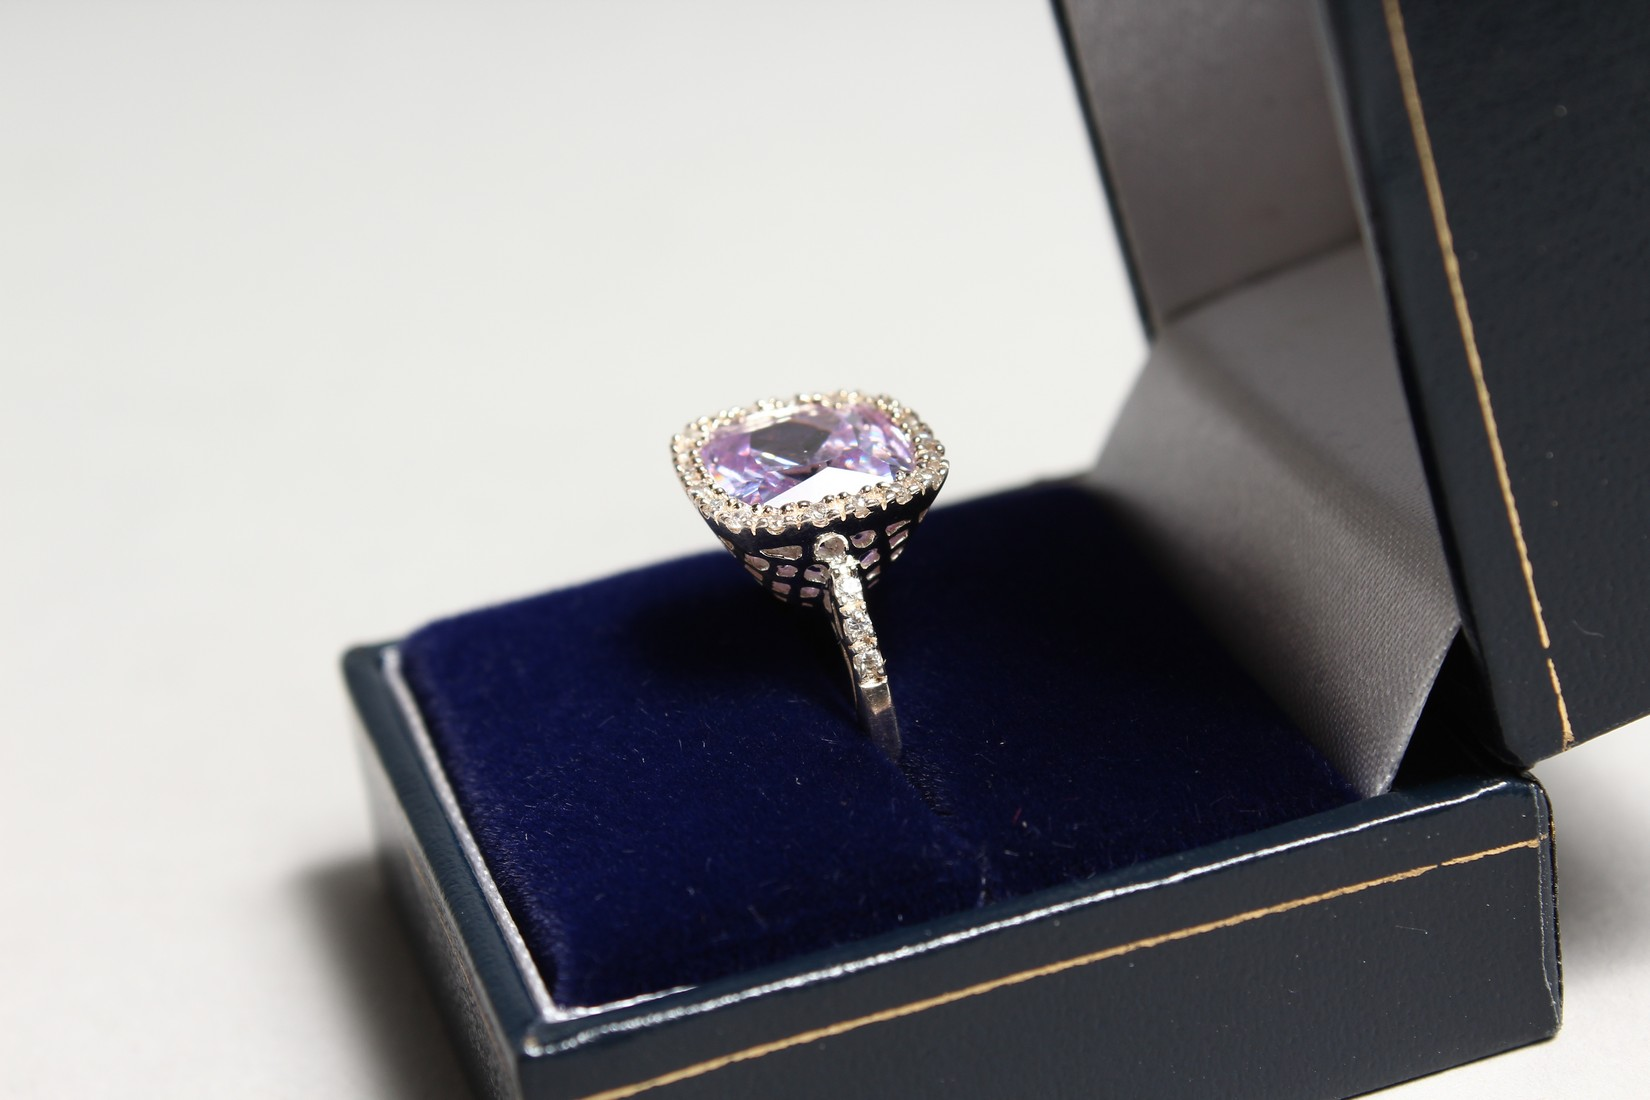 A SILVER CZ RING. - Image 3 of 3